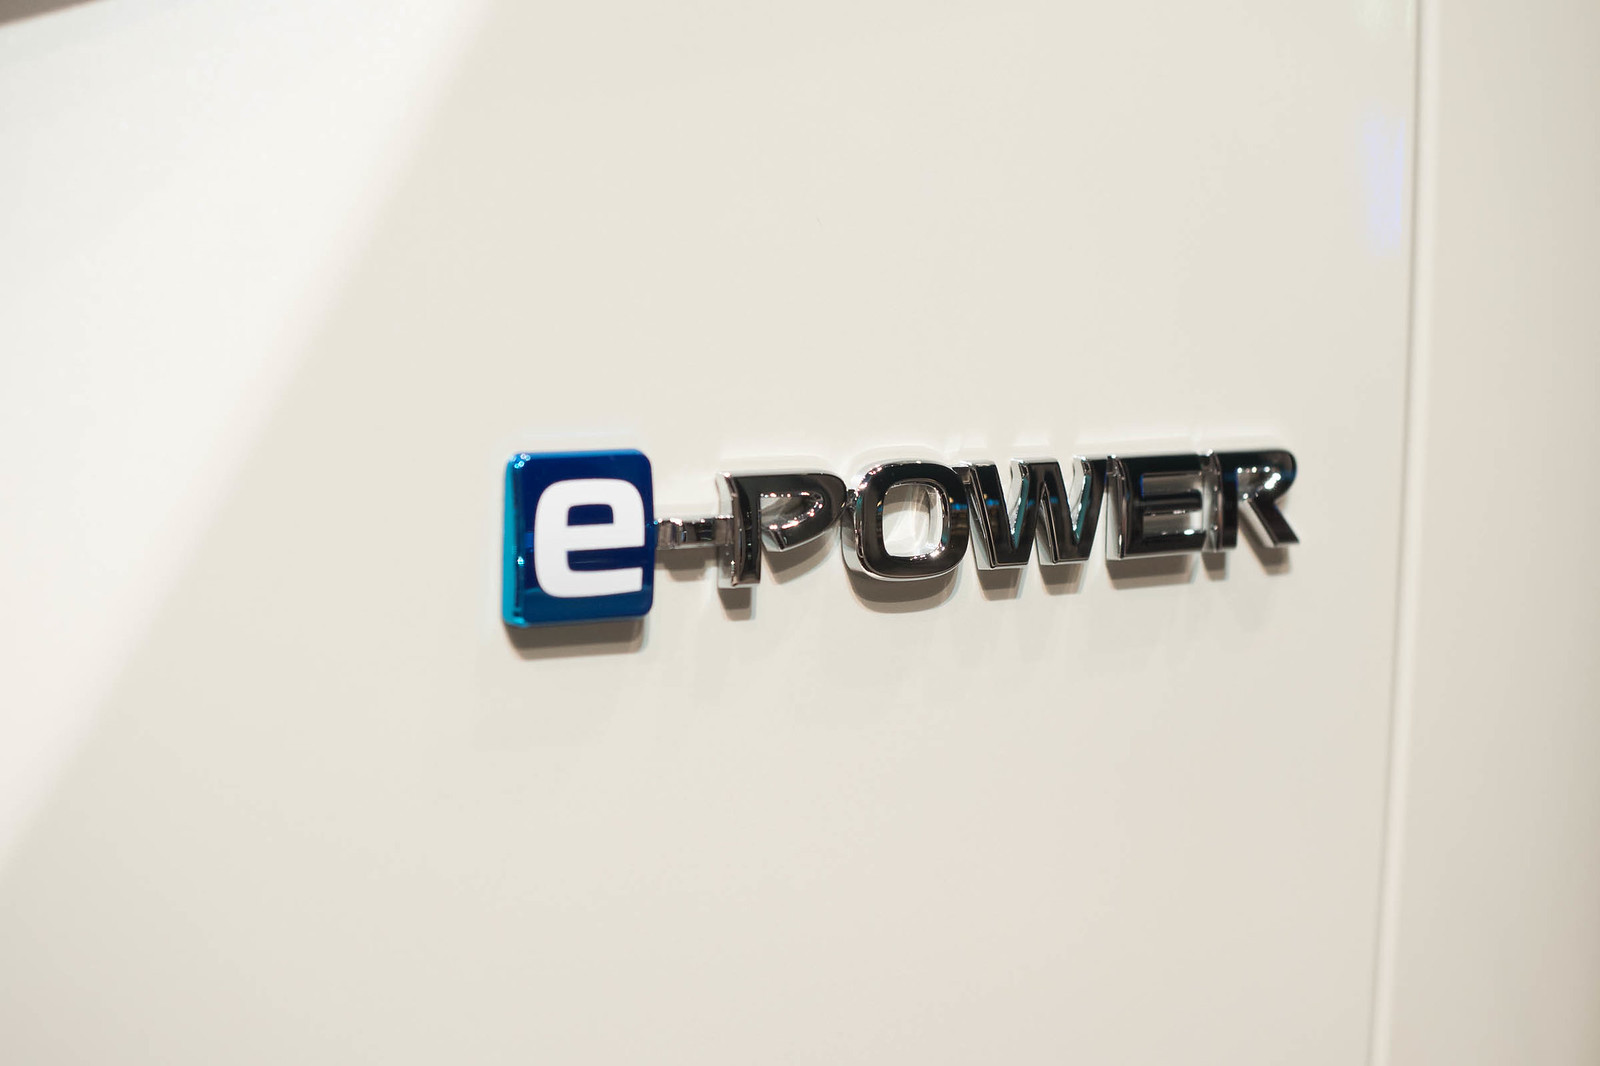 Nissan_serena_e-POWER-36